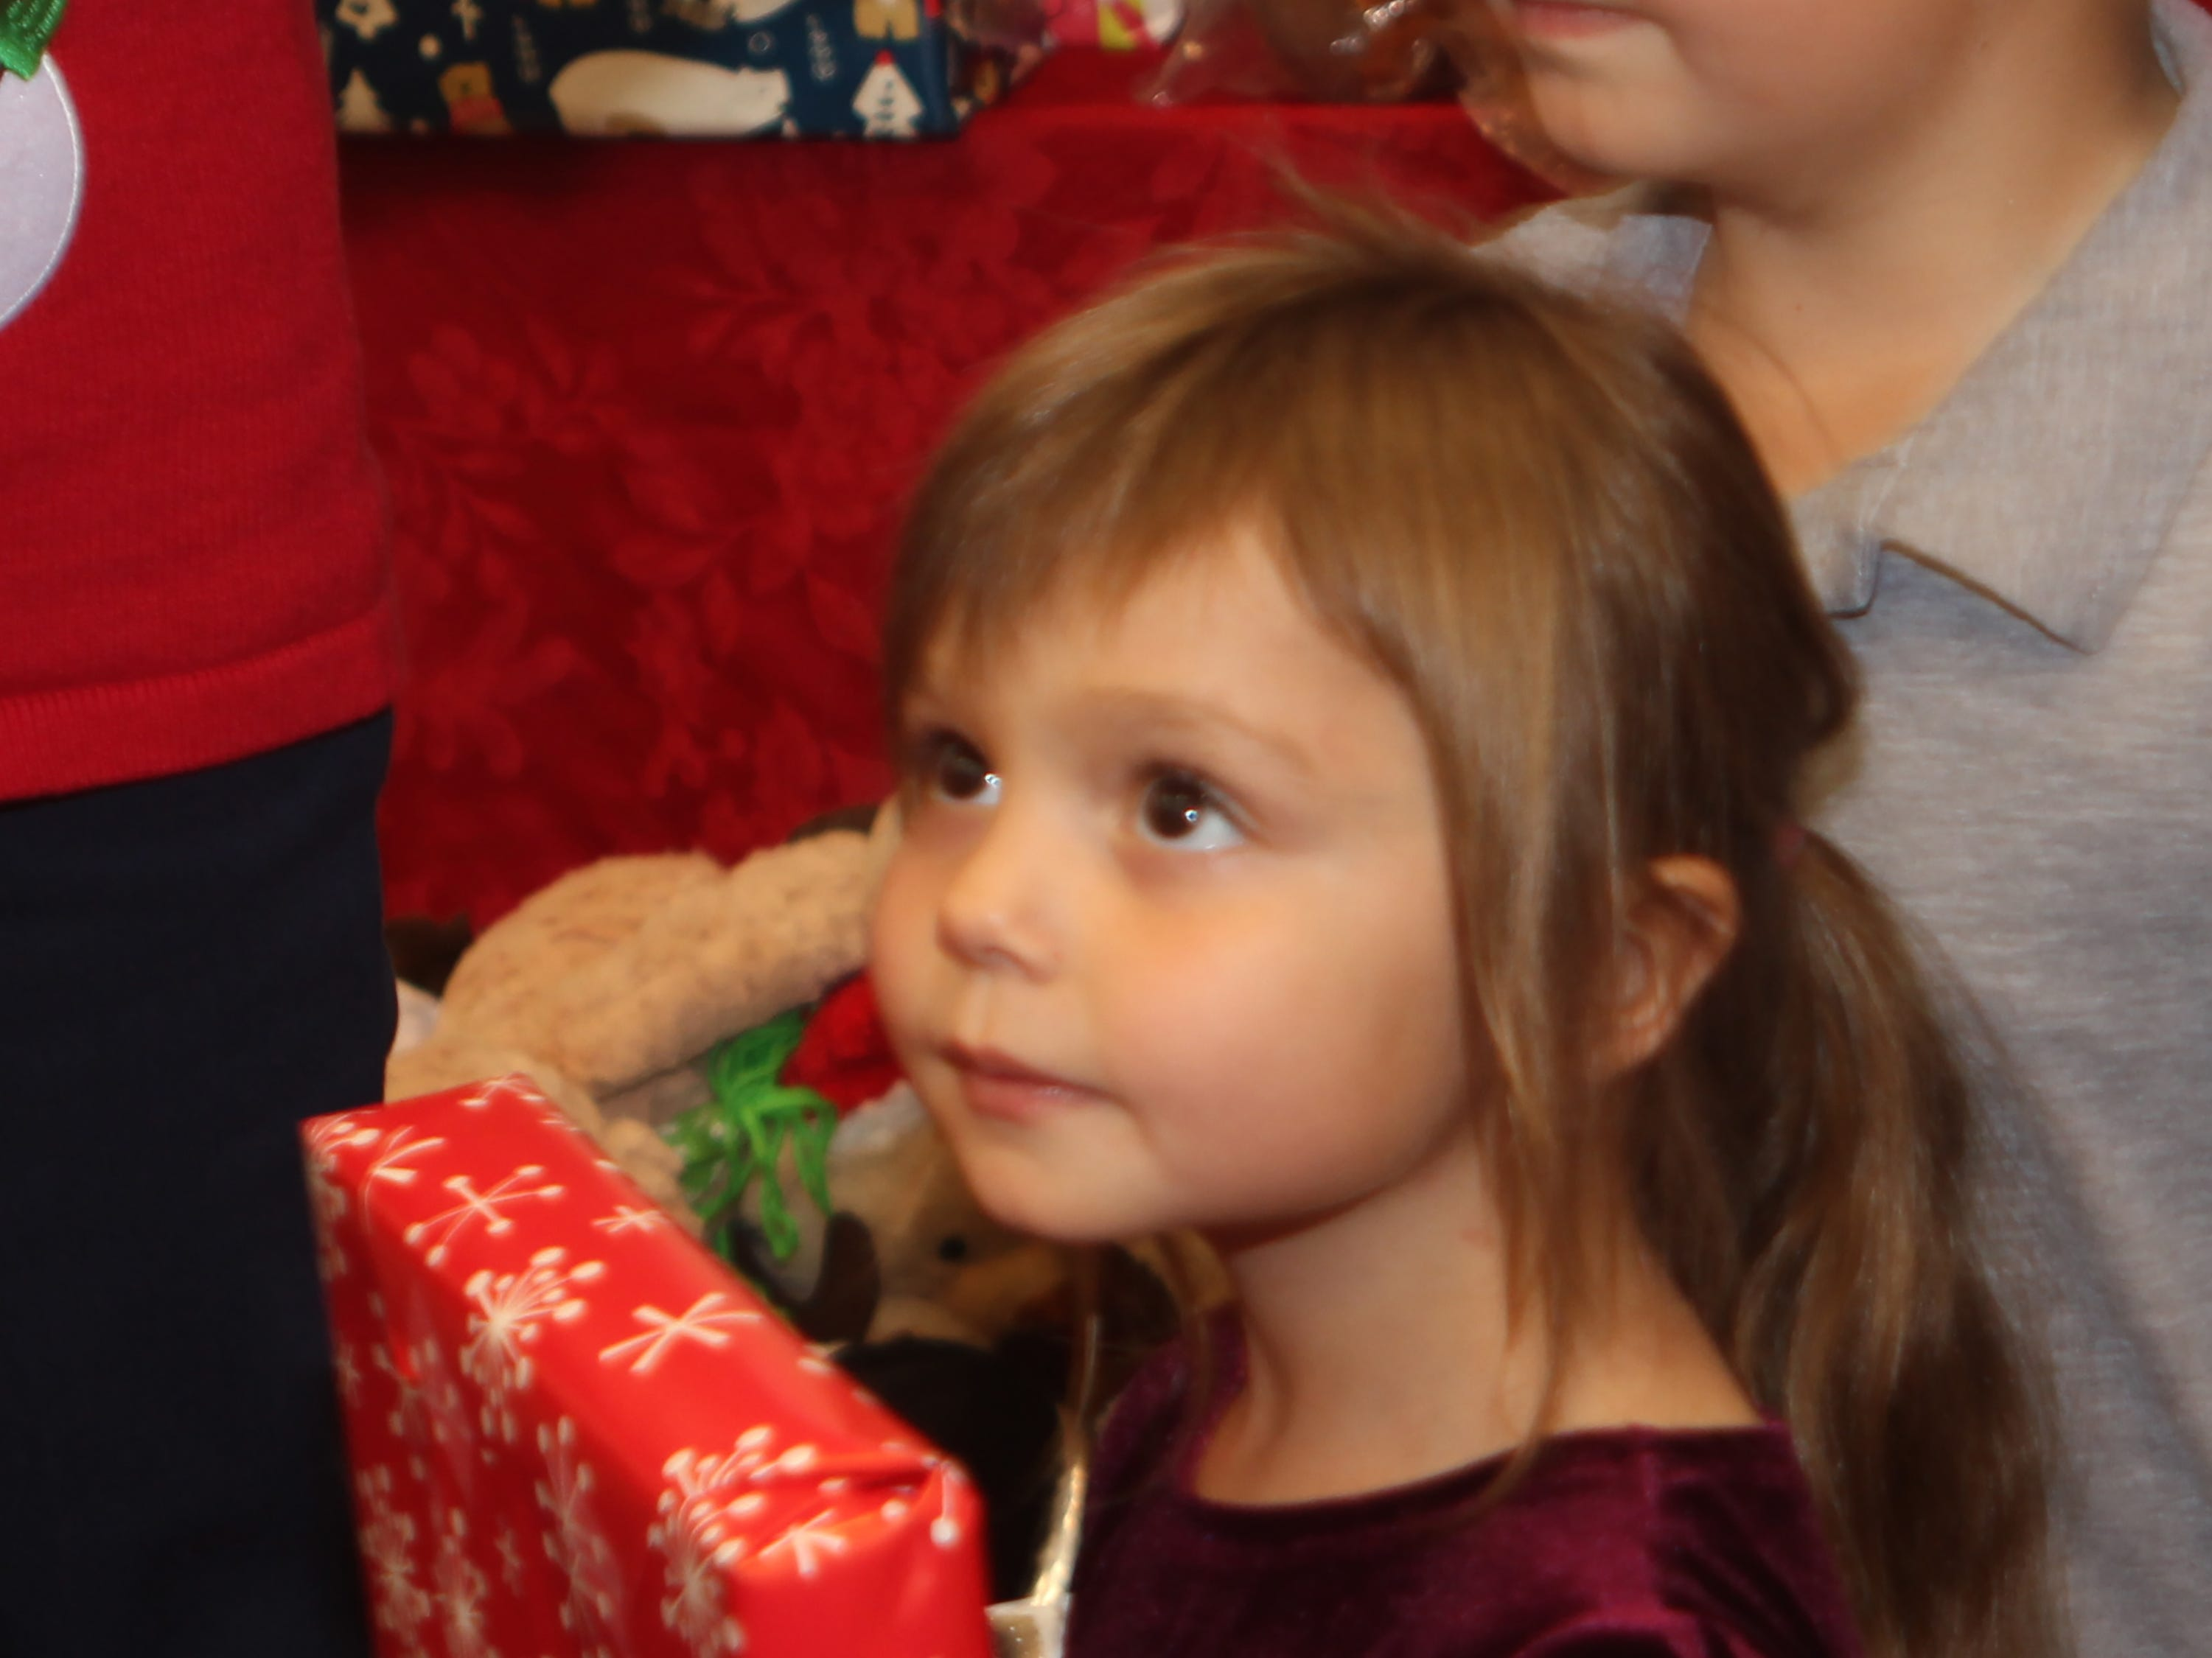 Kairi Camandona gazes up at Santa in typical wonderment after receiving her gift at the Y's Giving Tree event.